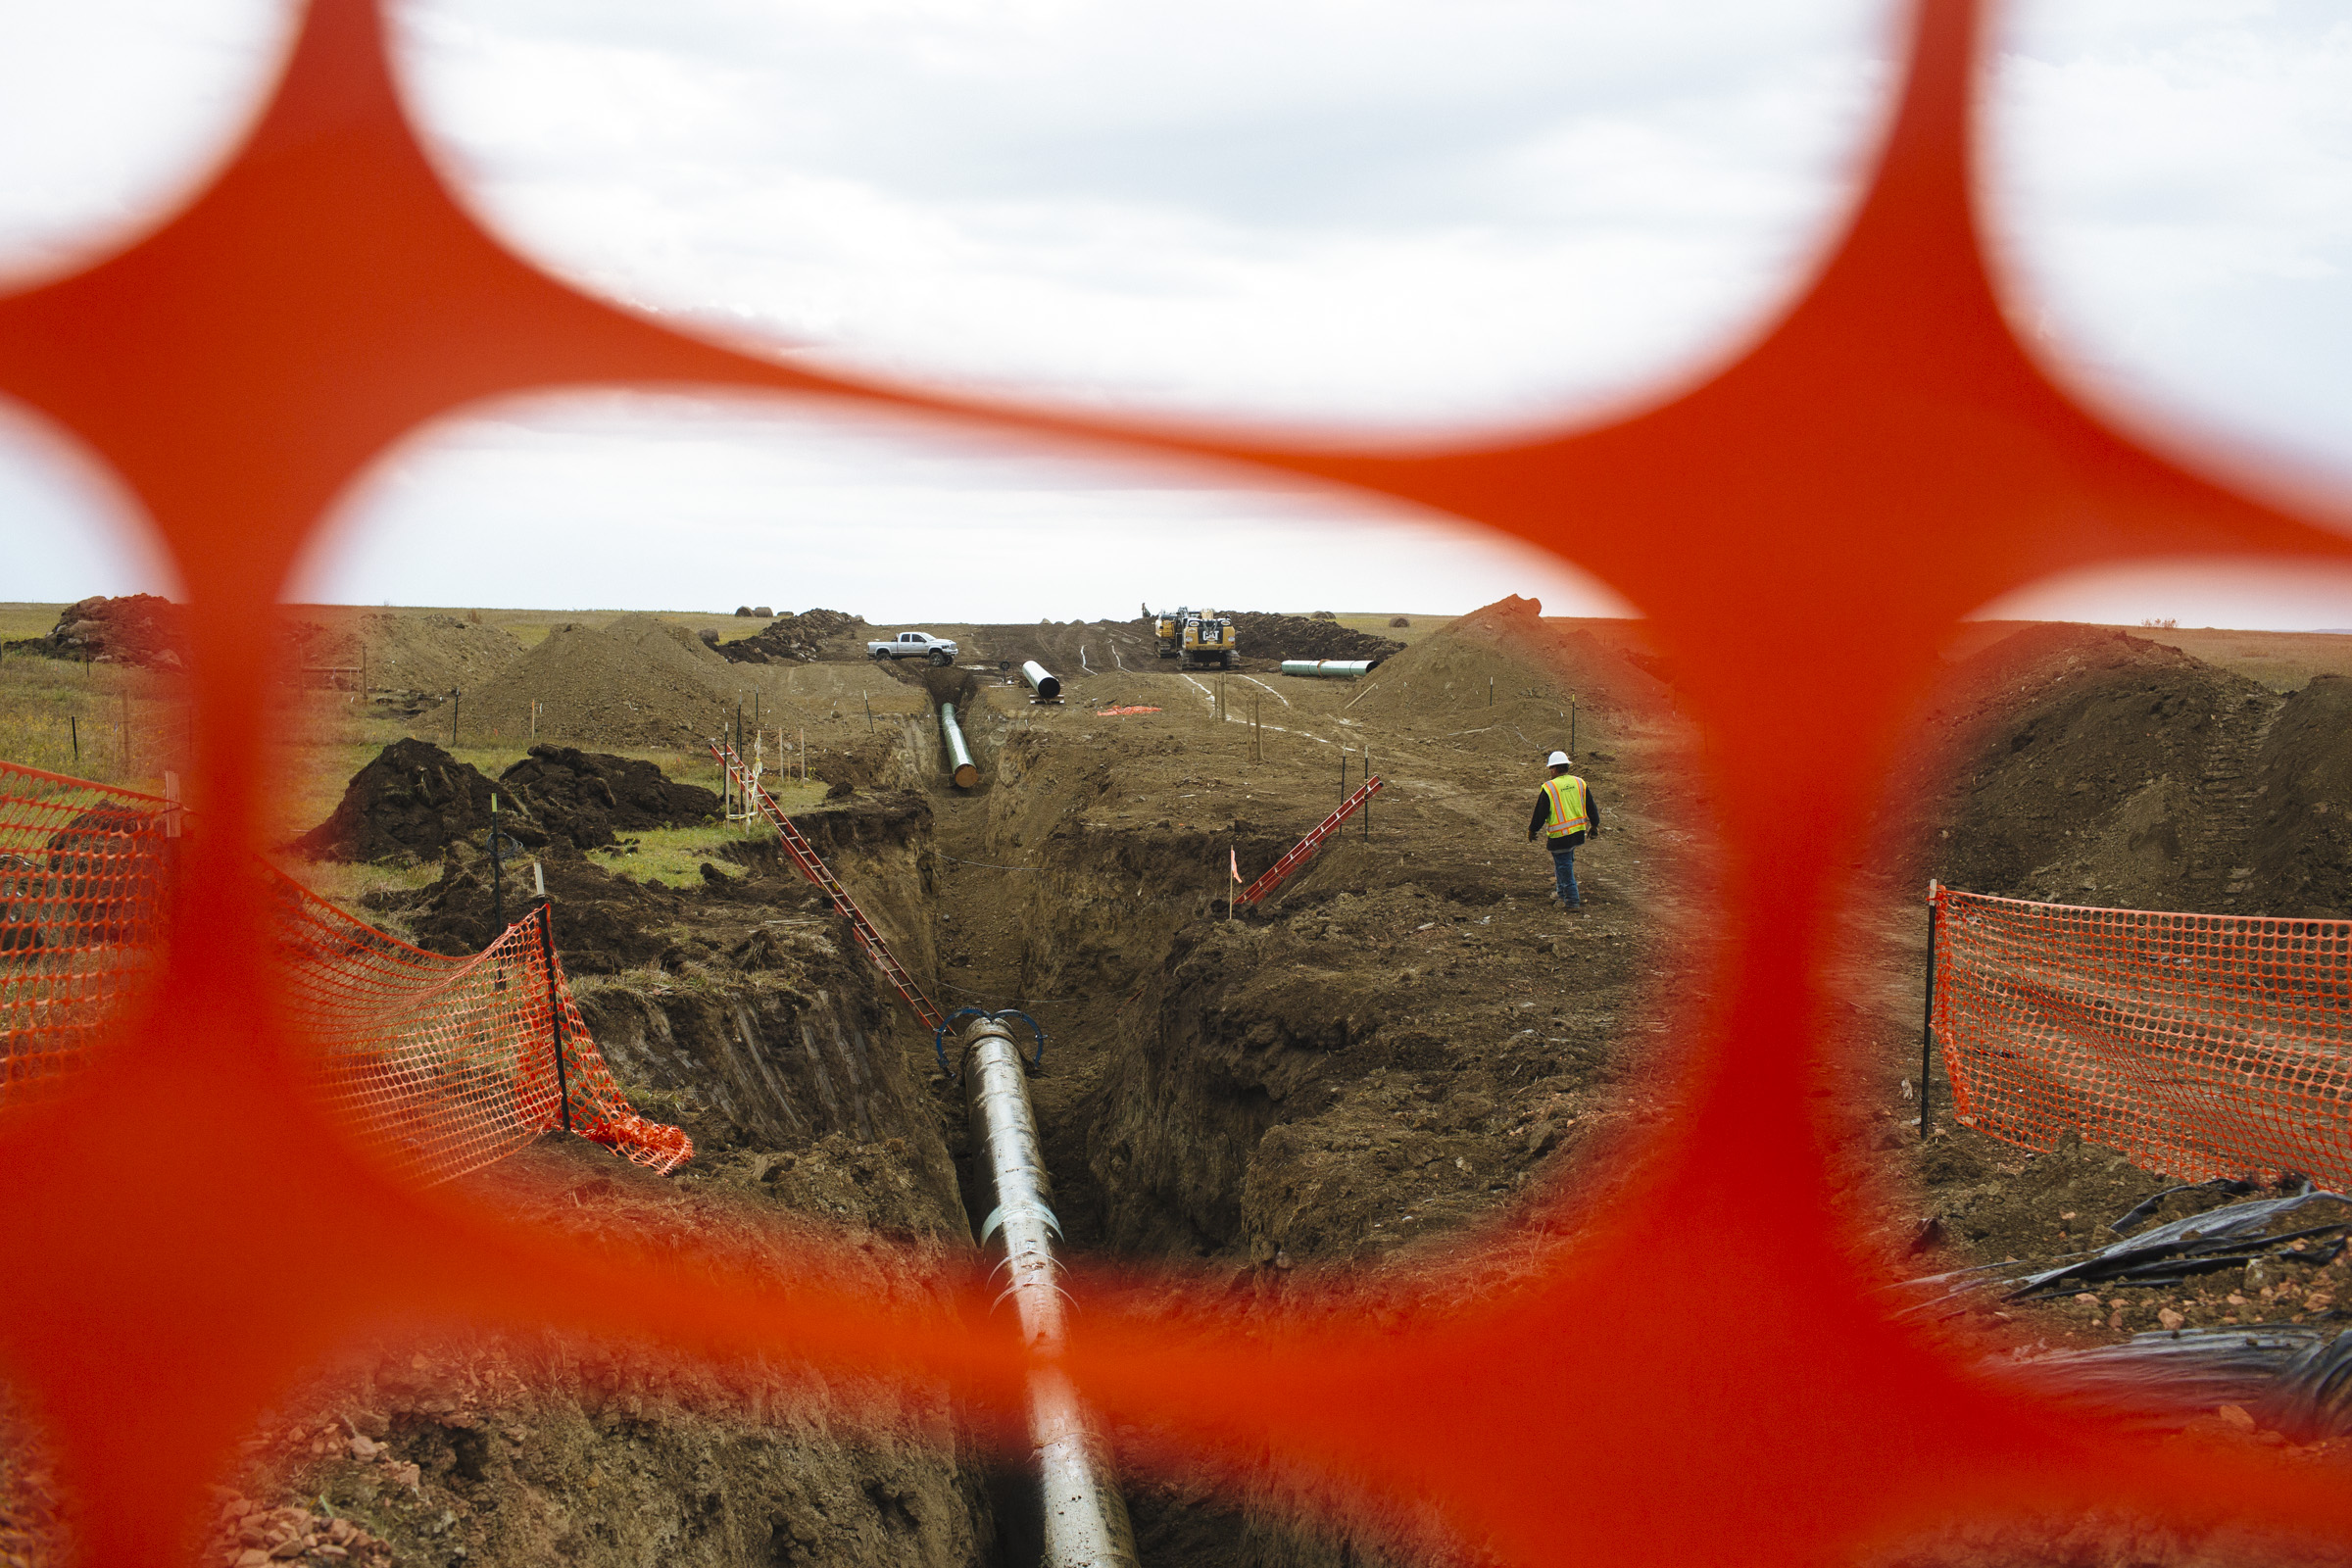 Construction of the Dakota Access Pipeline continues west of St. Anthony, approximately 20 miles north-west of the Oceti Sakowin Camp. (Photo by Angus Mordant/Groundtruth)